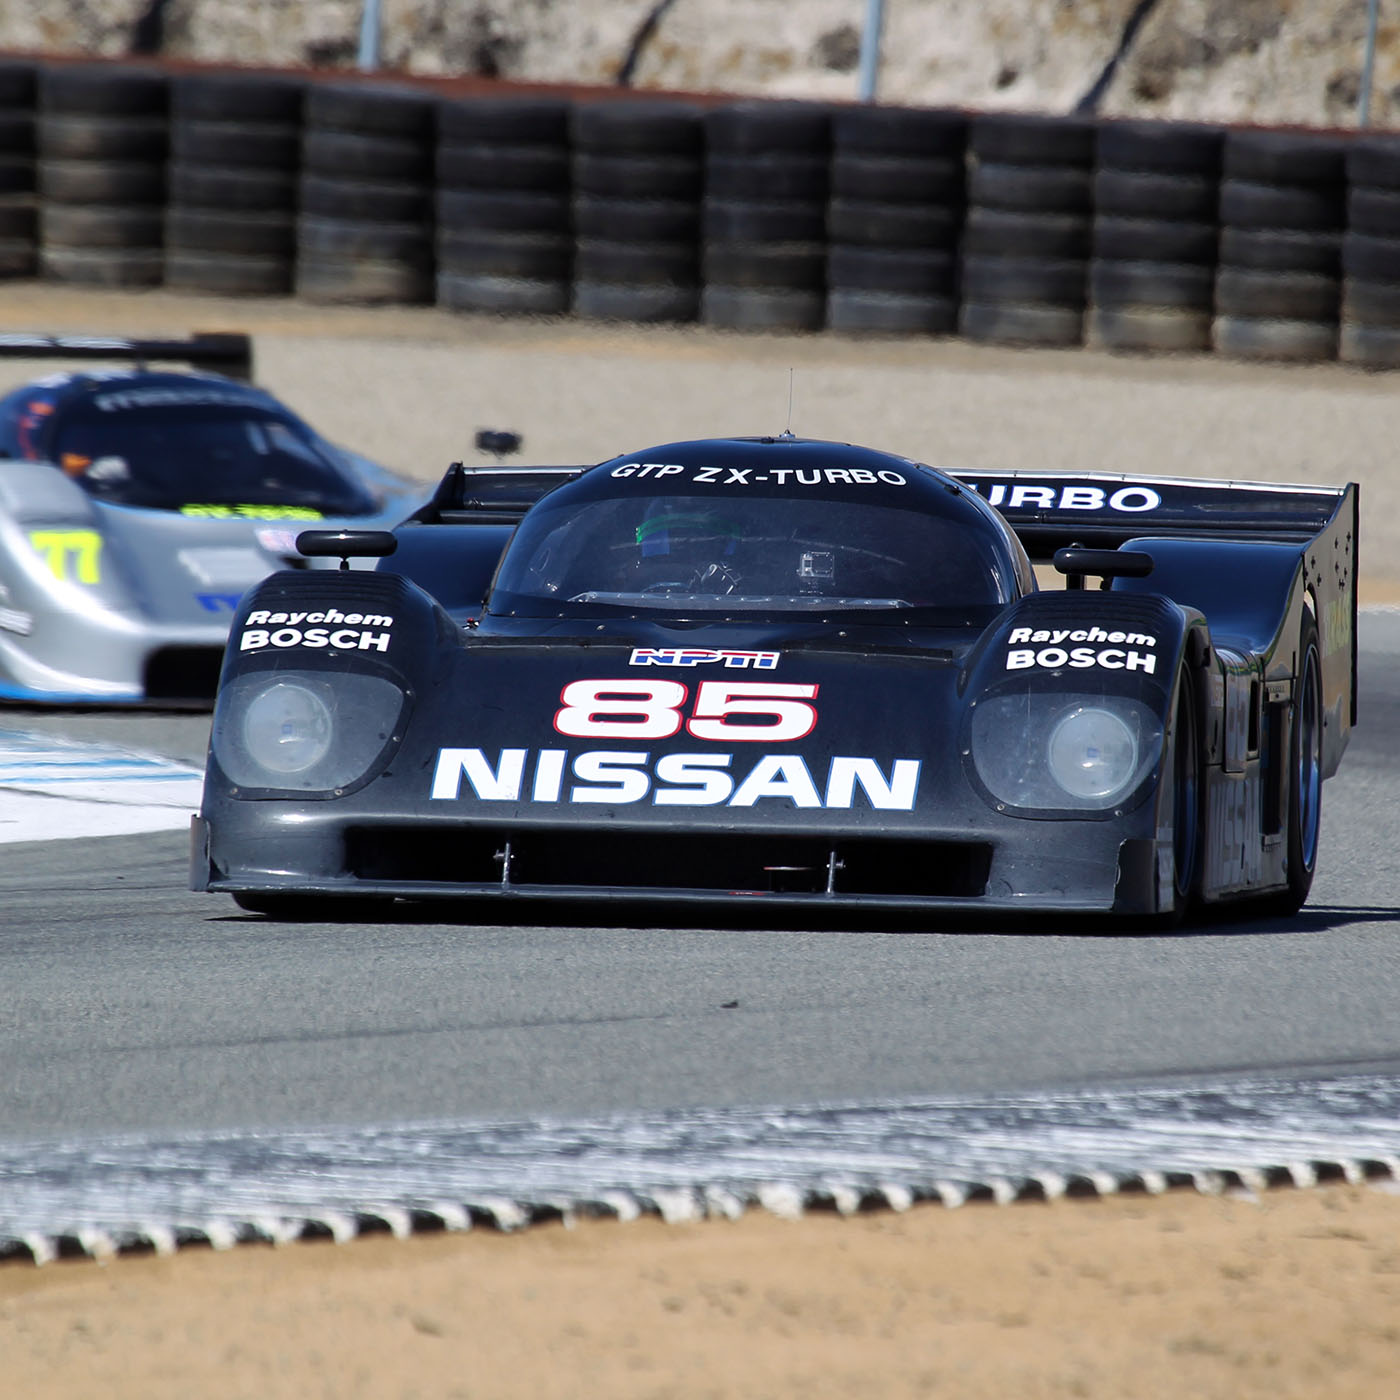 MP 846: The Week In Sports Cars, May 31, with Pruett and Goodwin